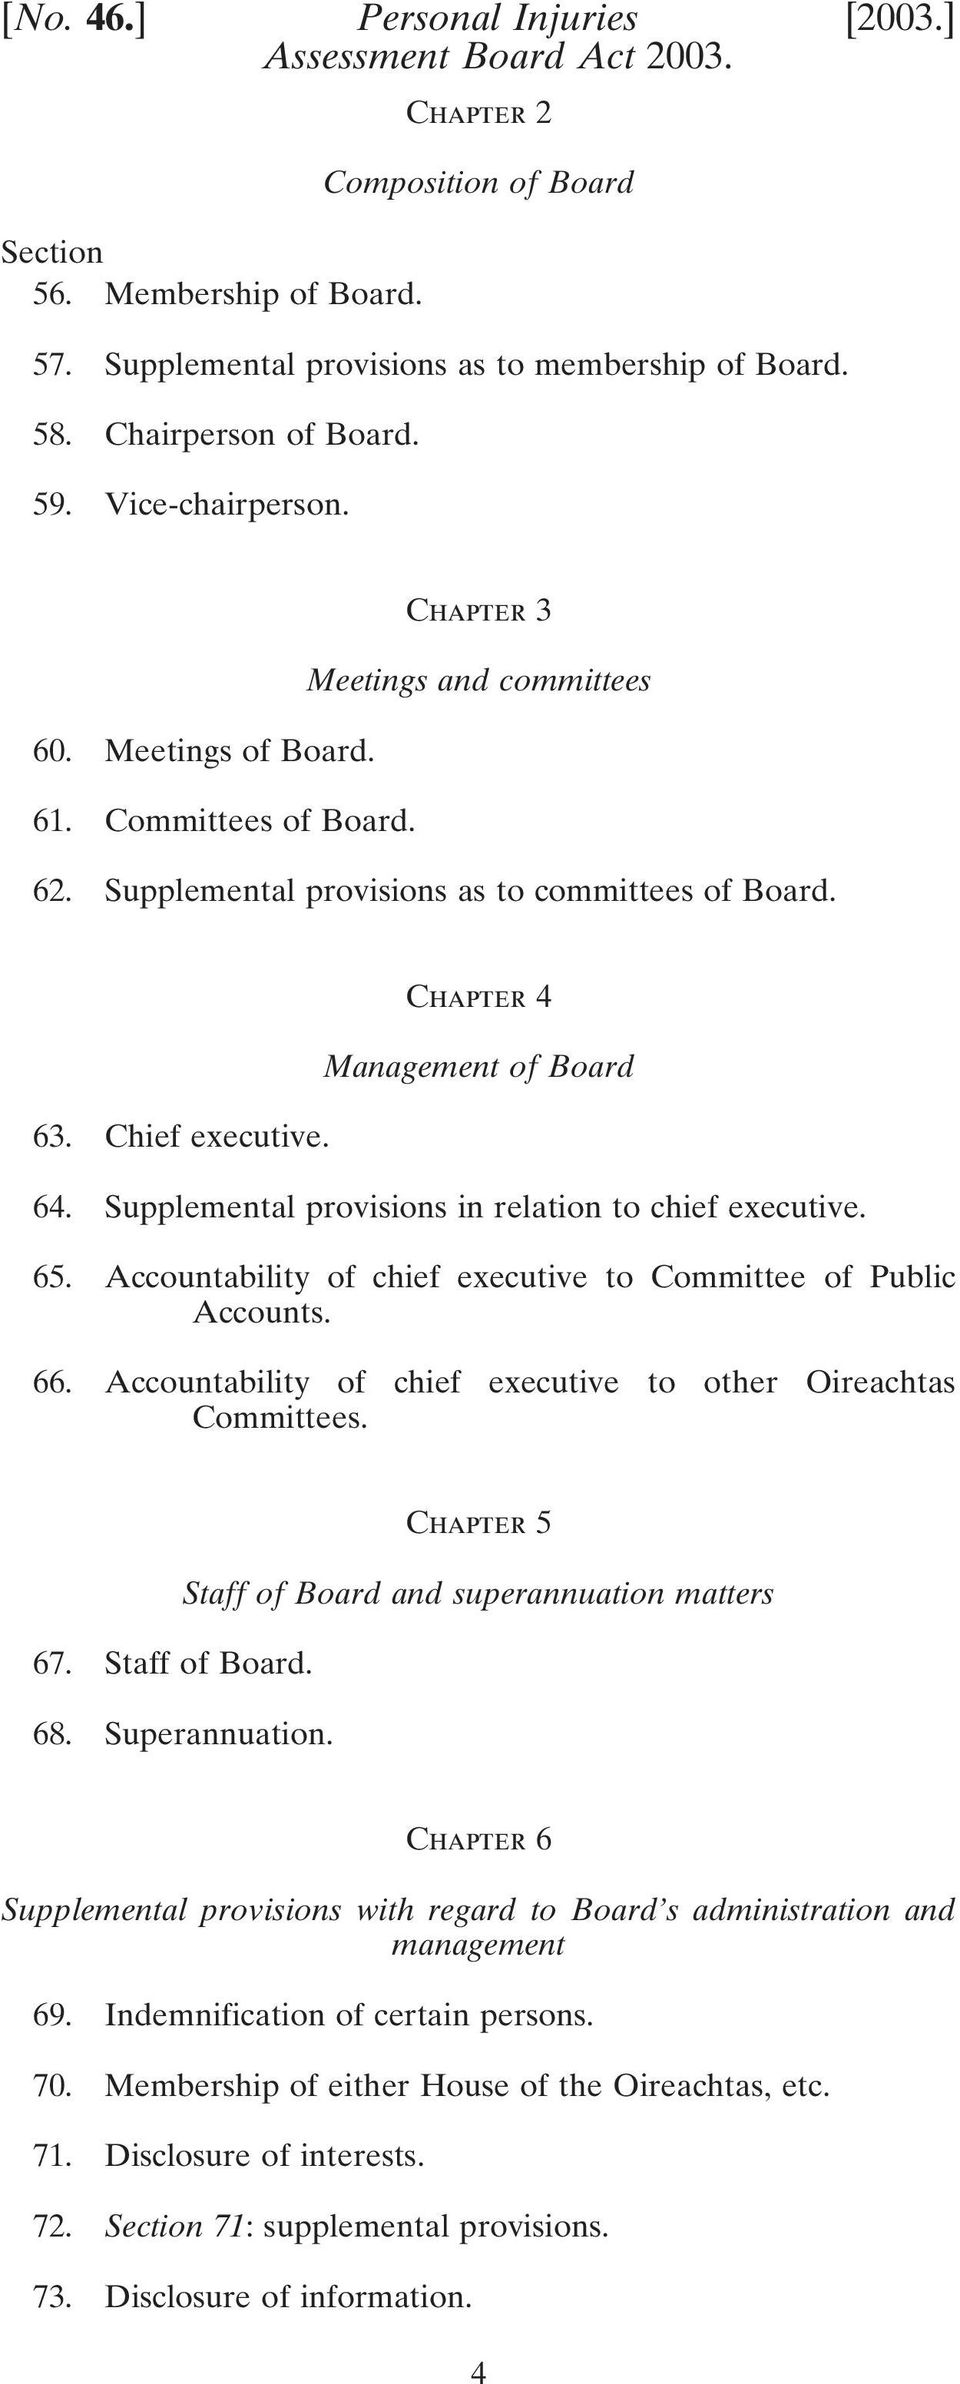 Chapter 4 Management of Board 64. Supplemental provisions in relation to chief executive. 65. Accountability of chief executive to Committee of Public Accounts. 66.